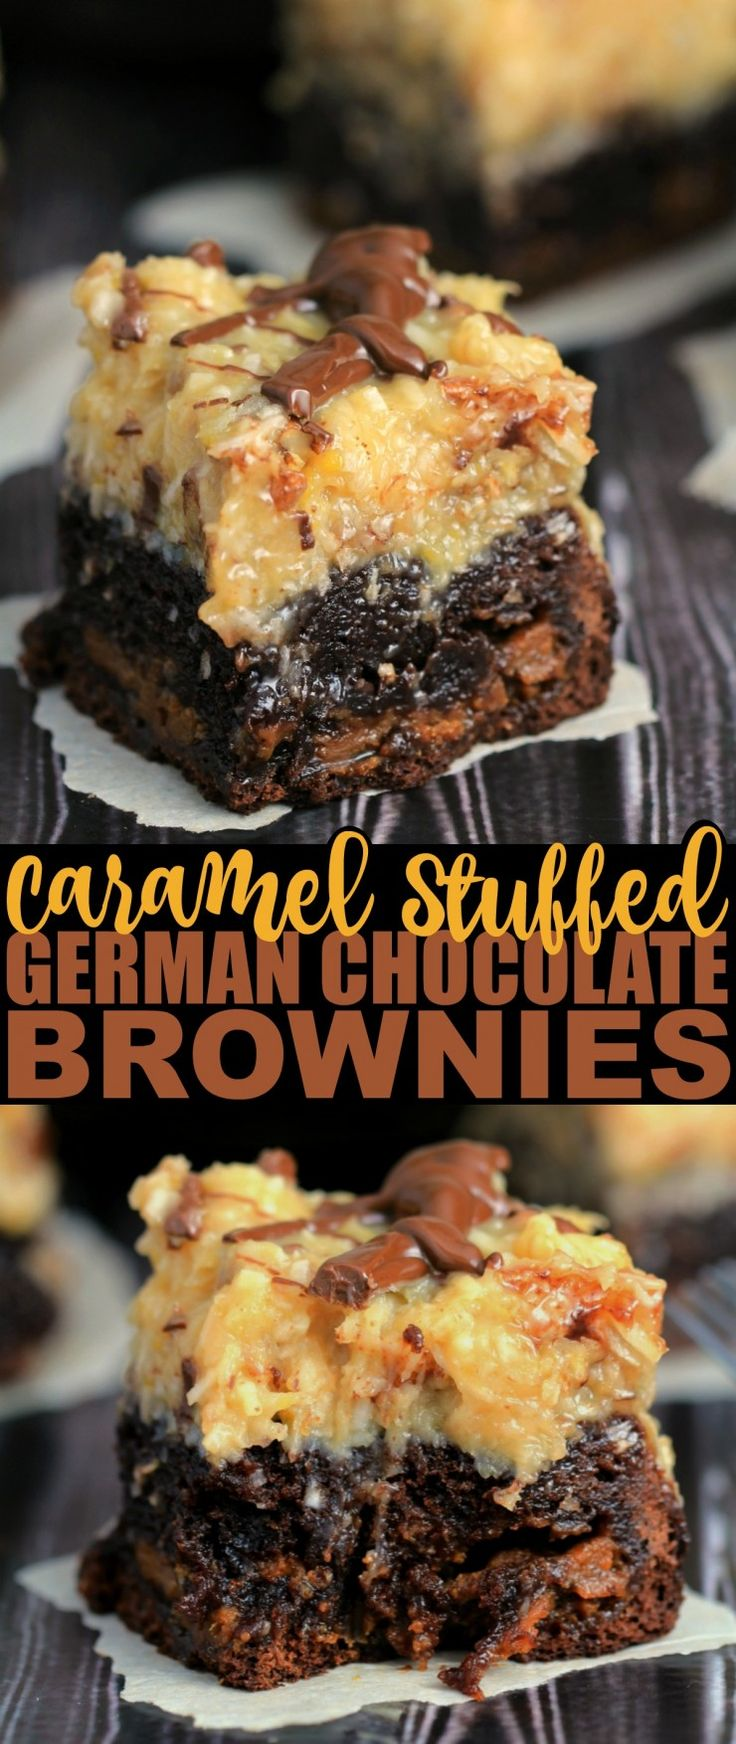 Best 25+ German chocolate brownies ideas only on Pinterest ...